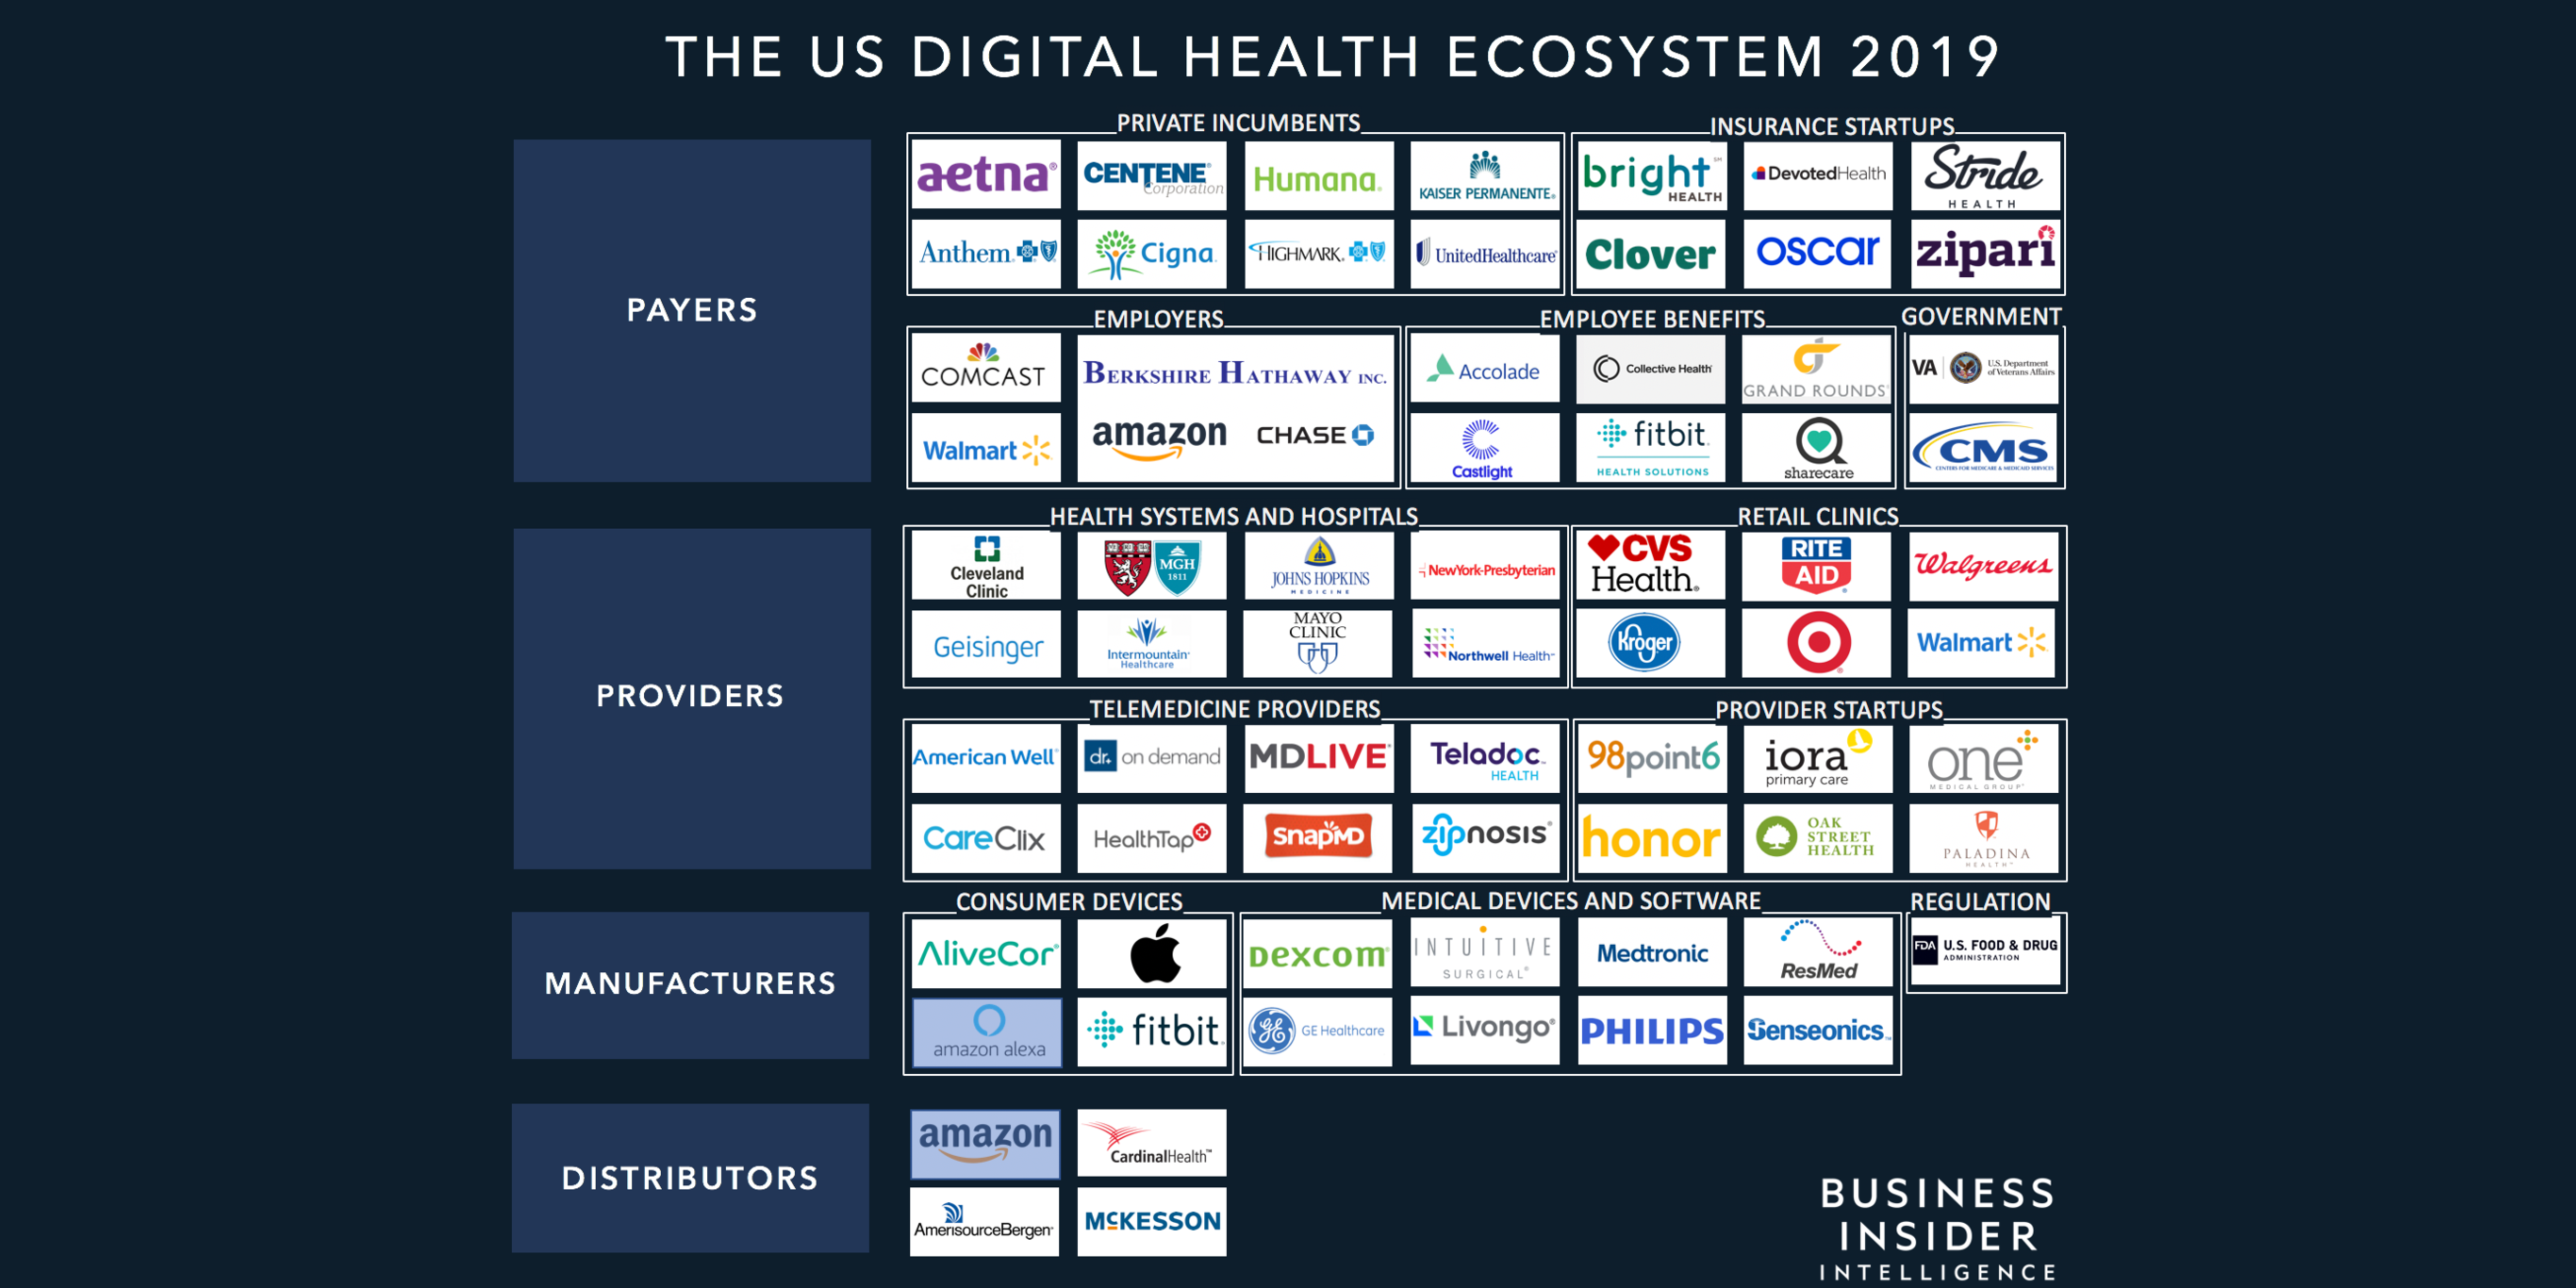 Digital Health Ecosystem Report The Top Startups And Companies